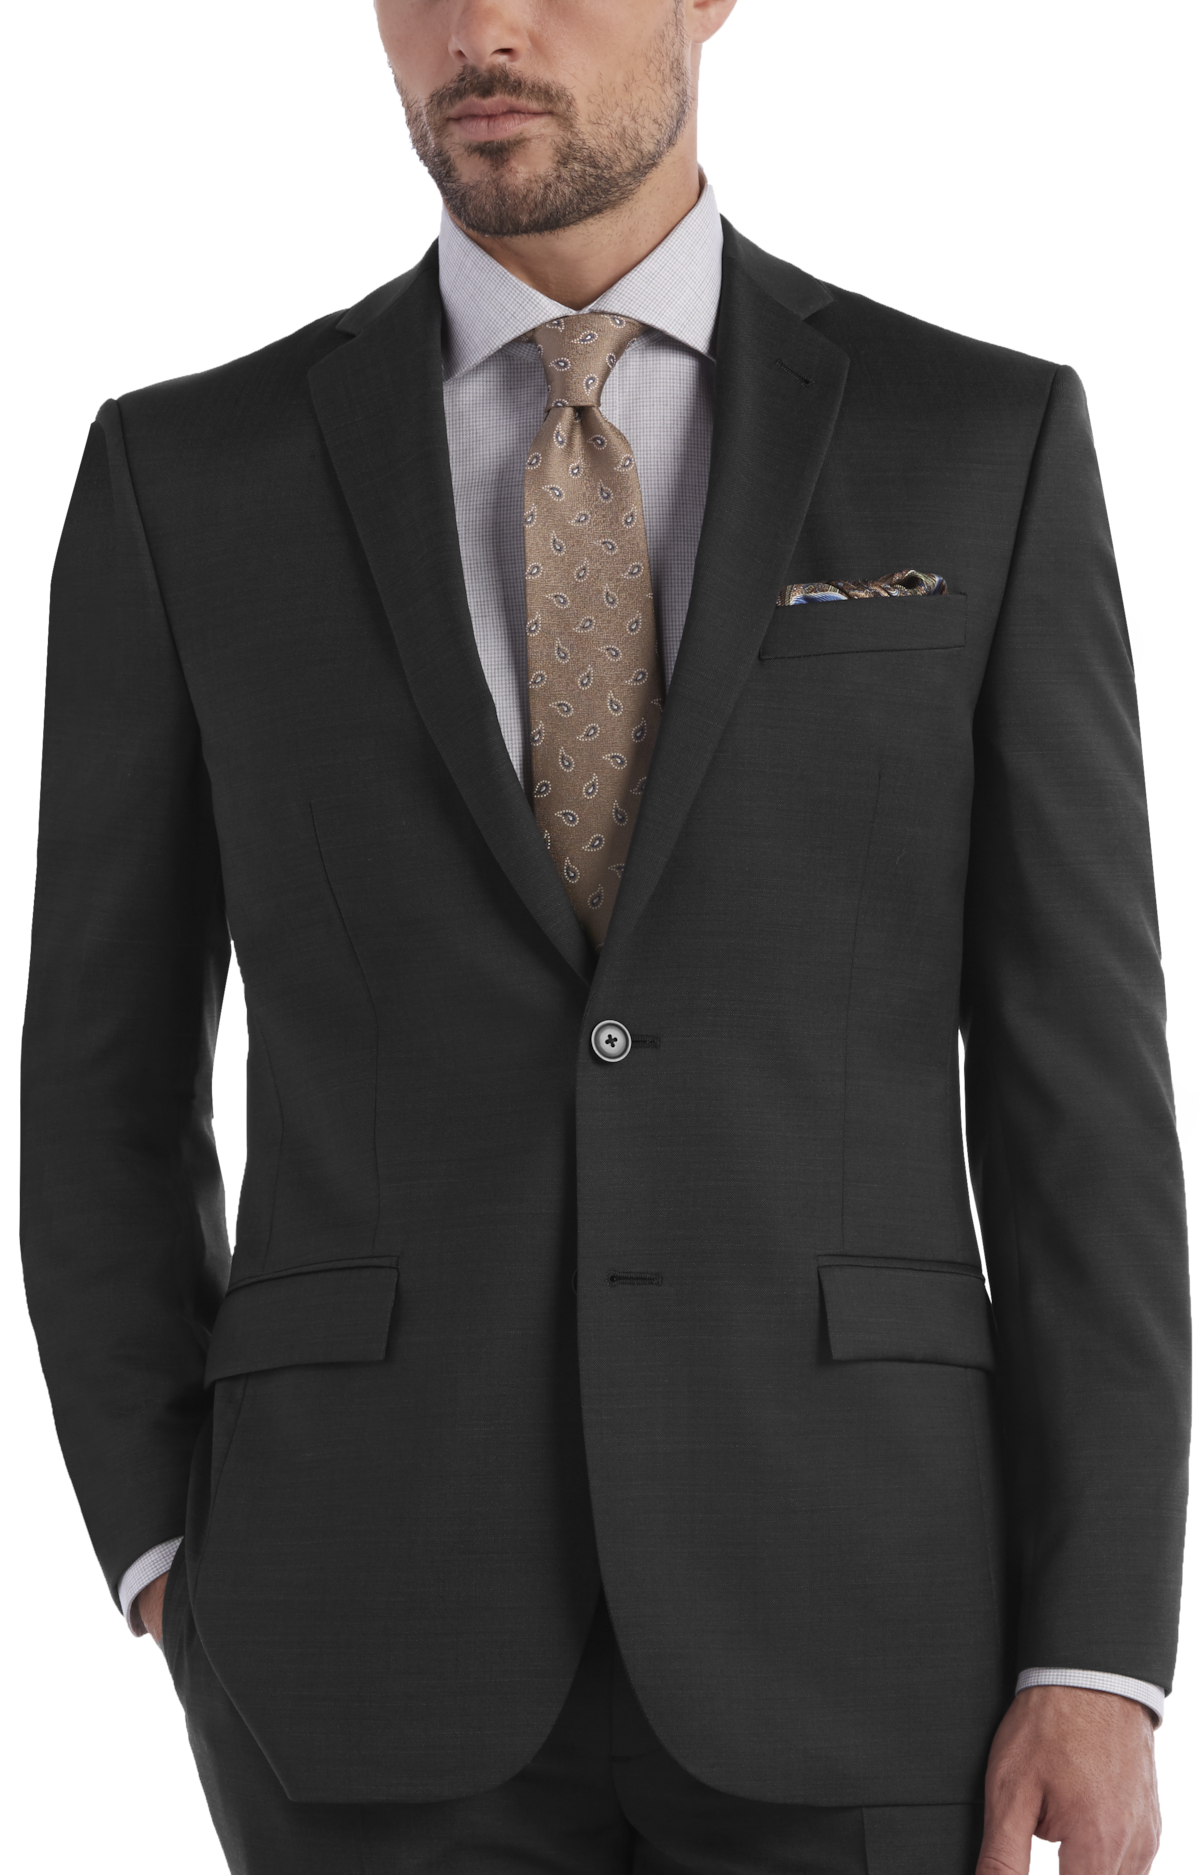 Men S Clothing Clearance Suits Dress Shirts More Men S Wearhouse